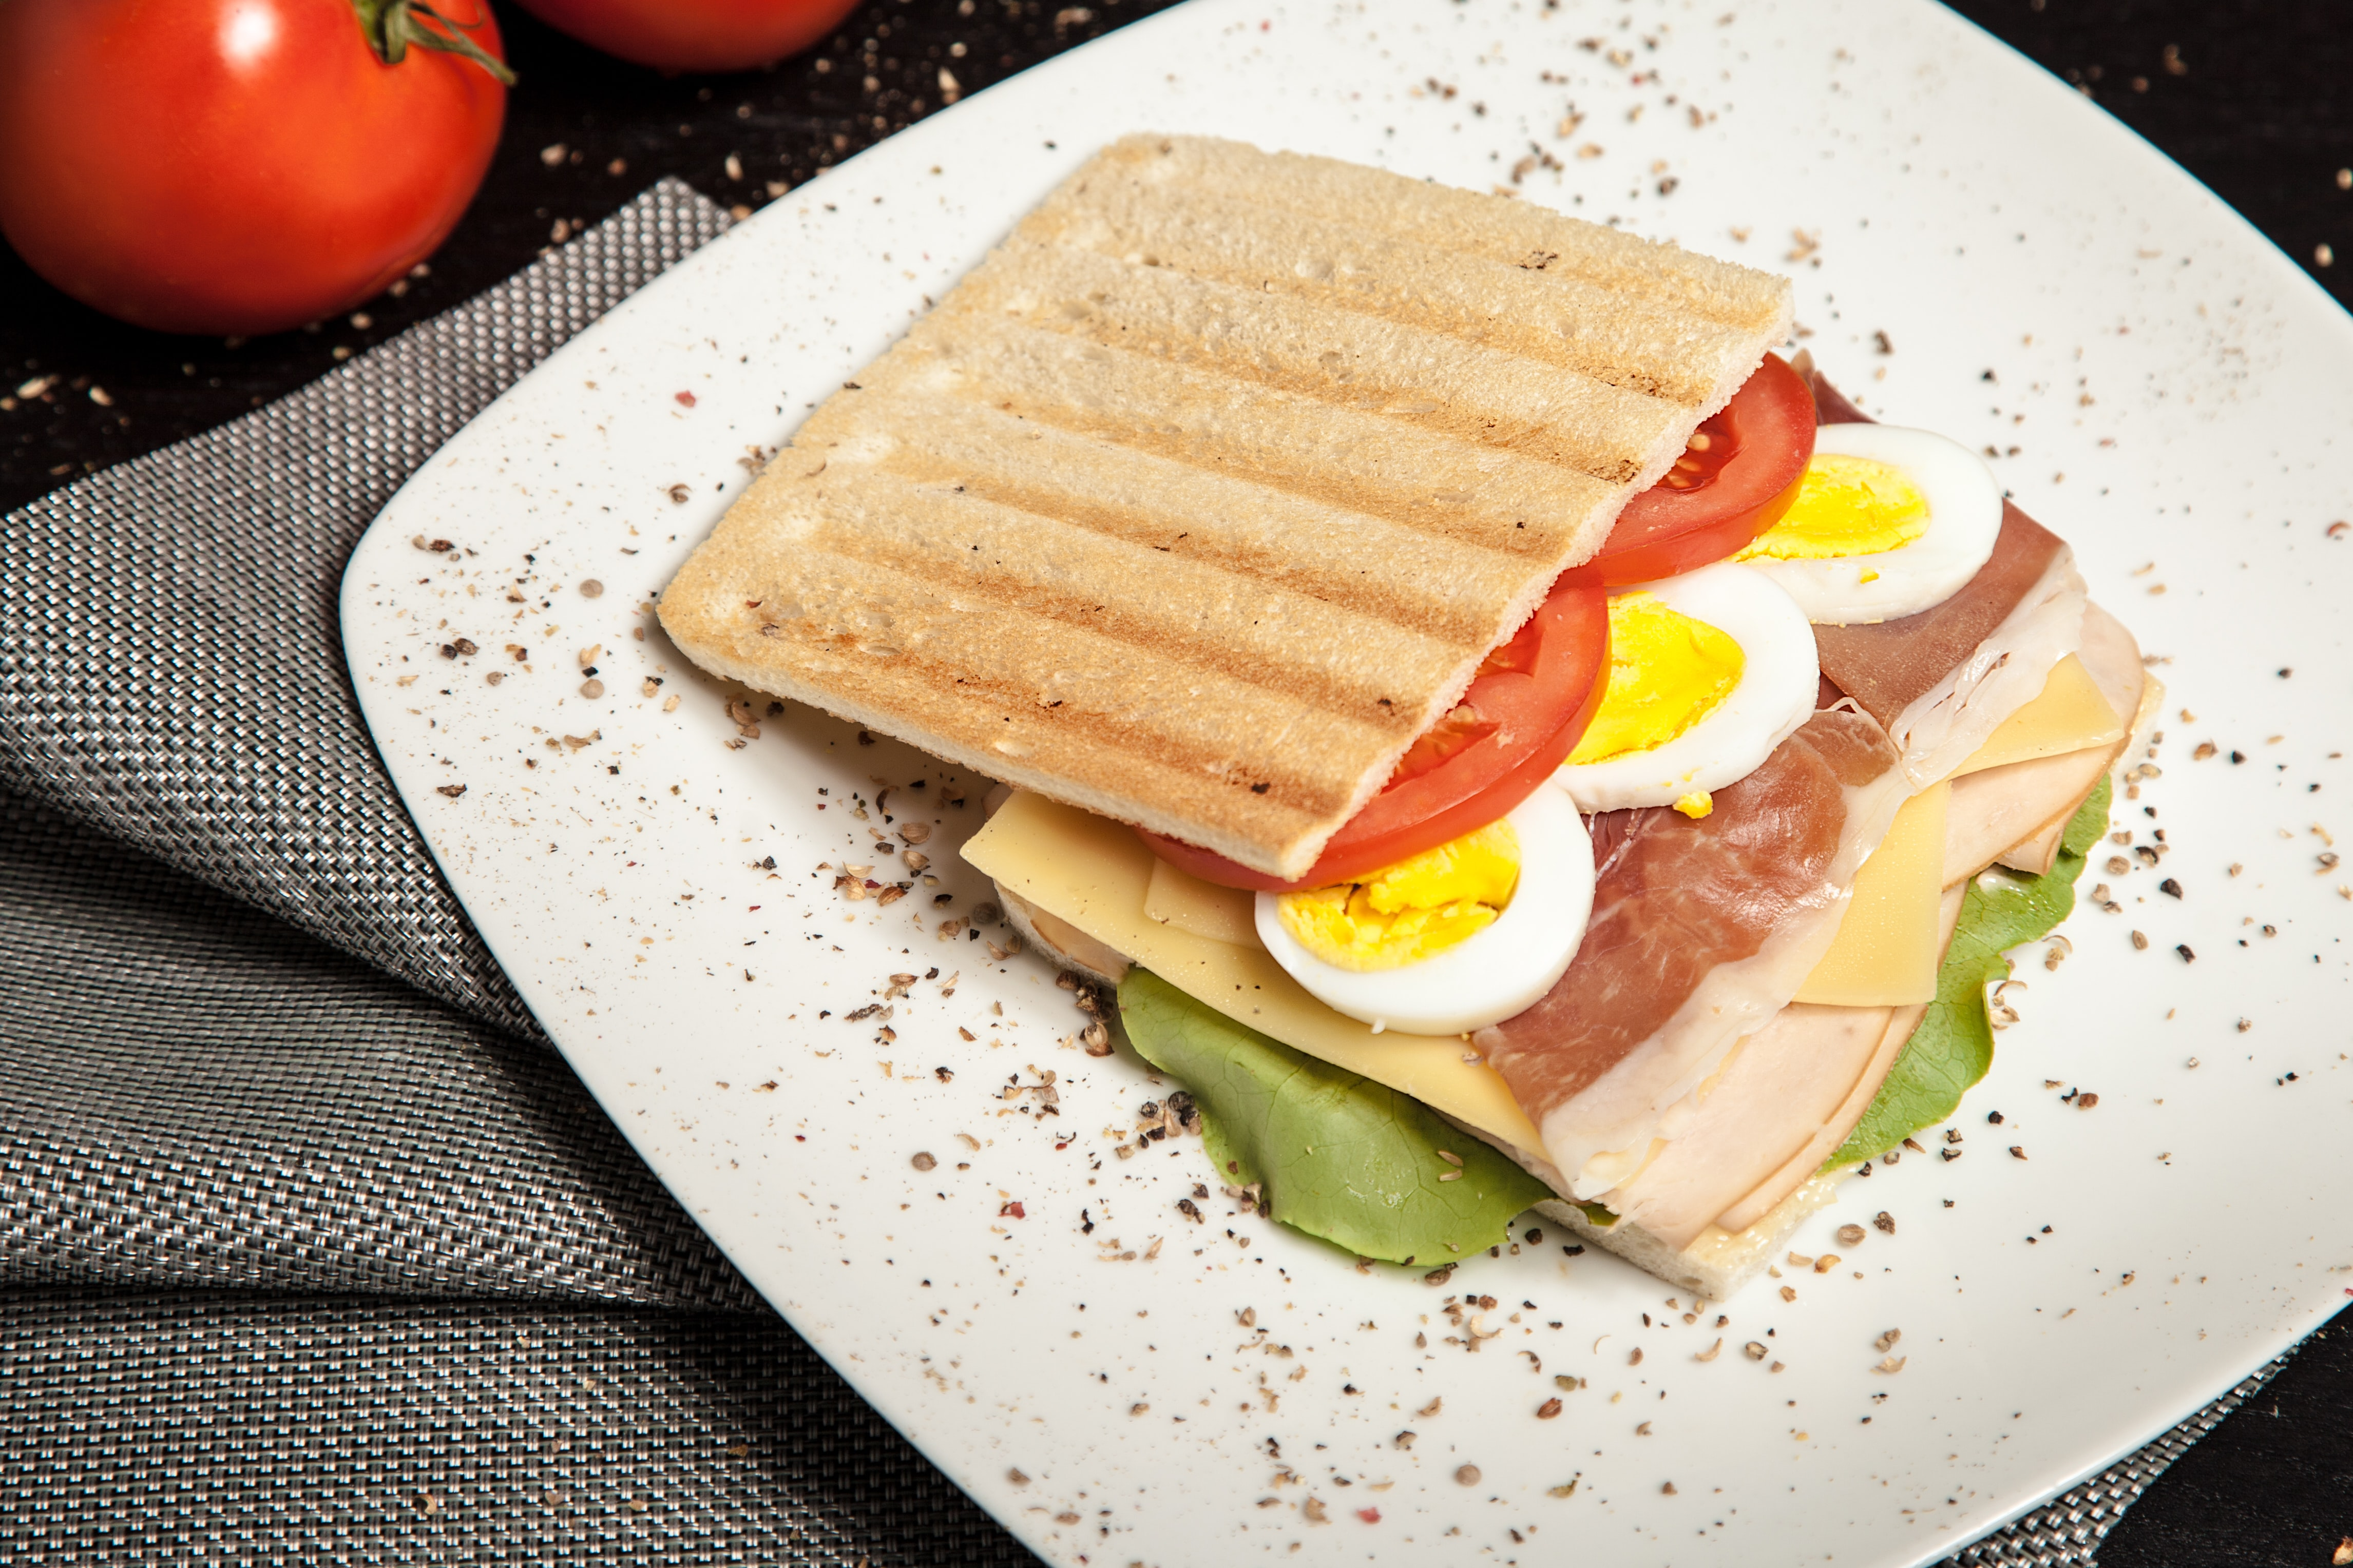 Toasted Russian sandwich with tomatoes, meat, eggs, and cheese